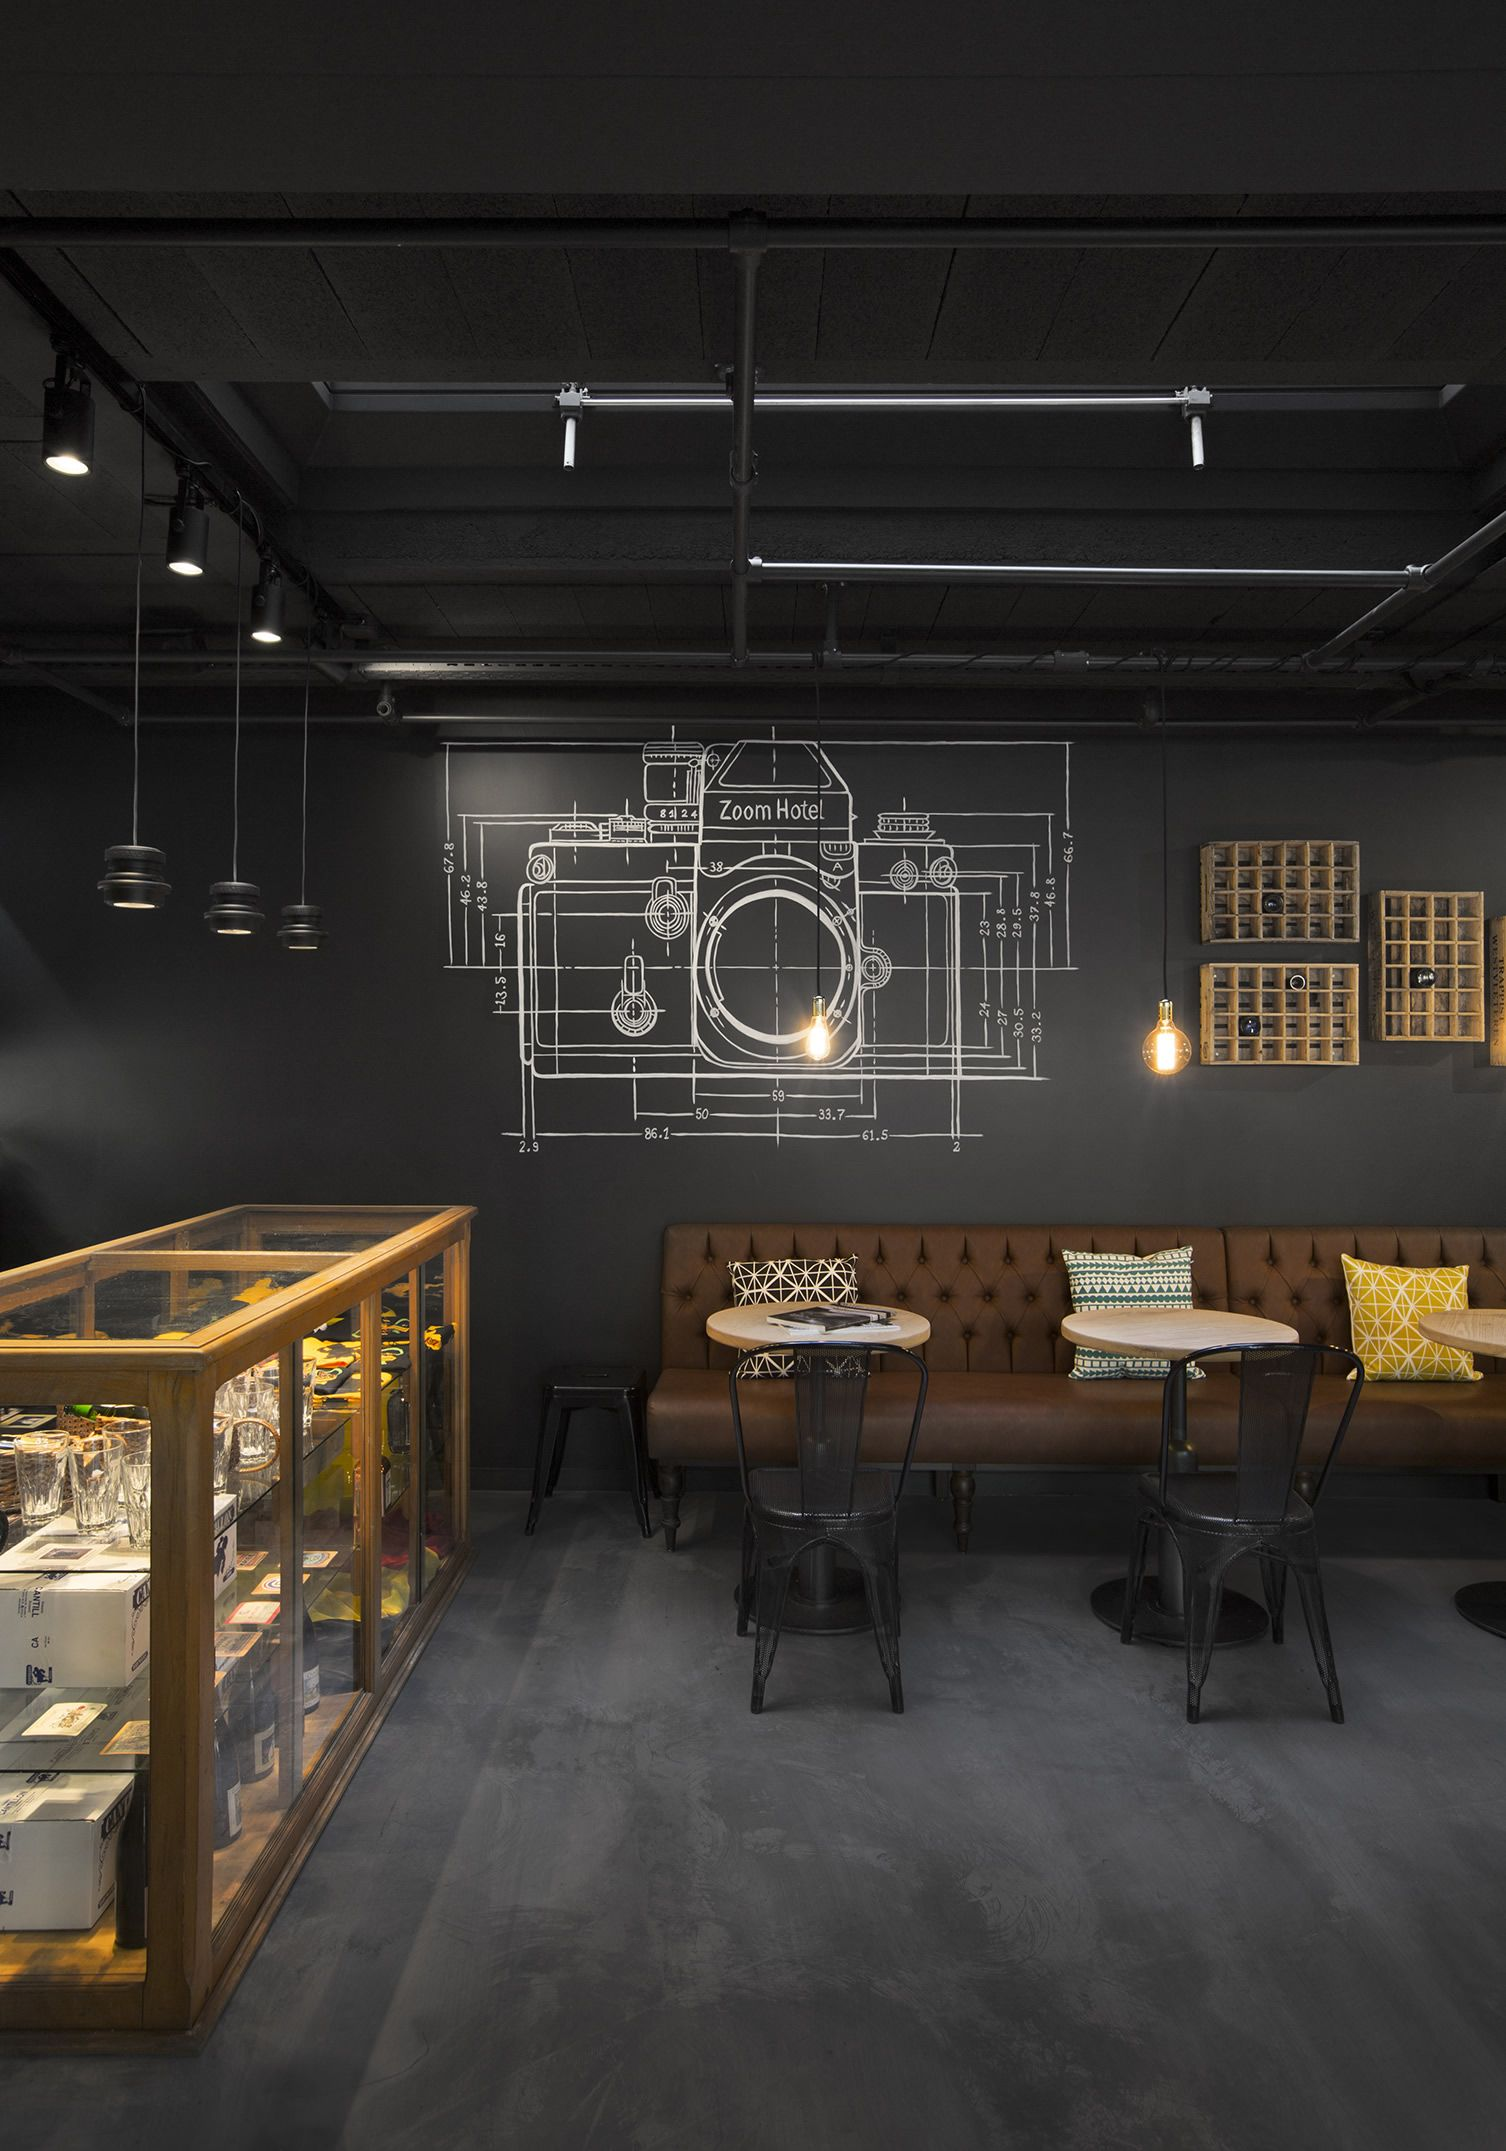 Brussels hotel's sharp design focuses on a photographic